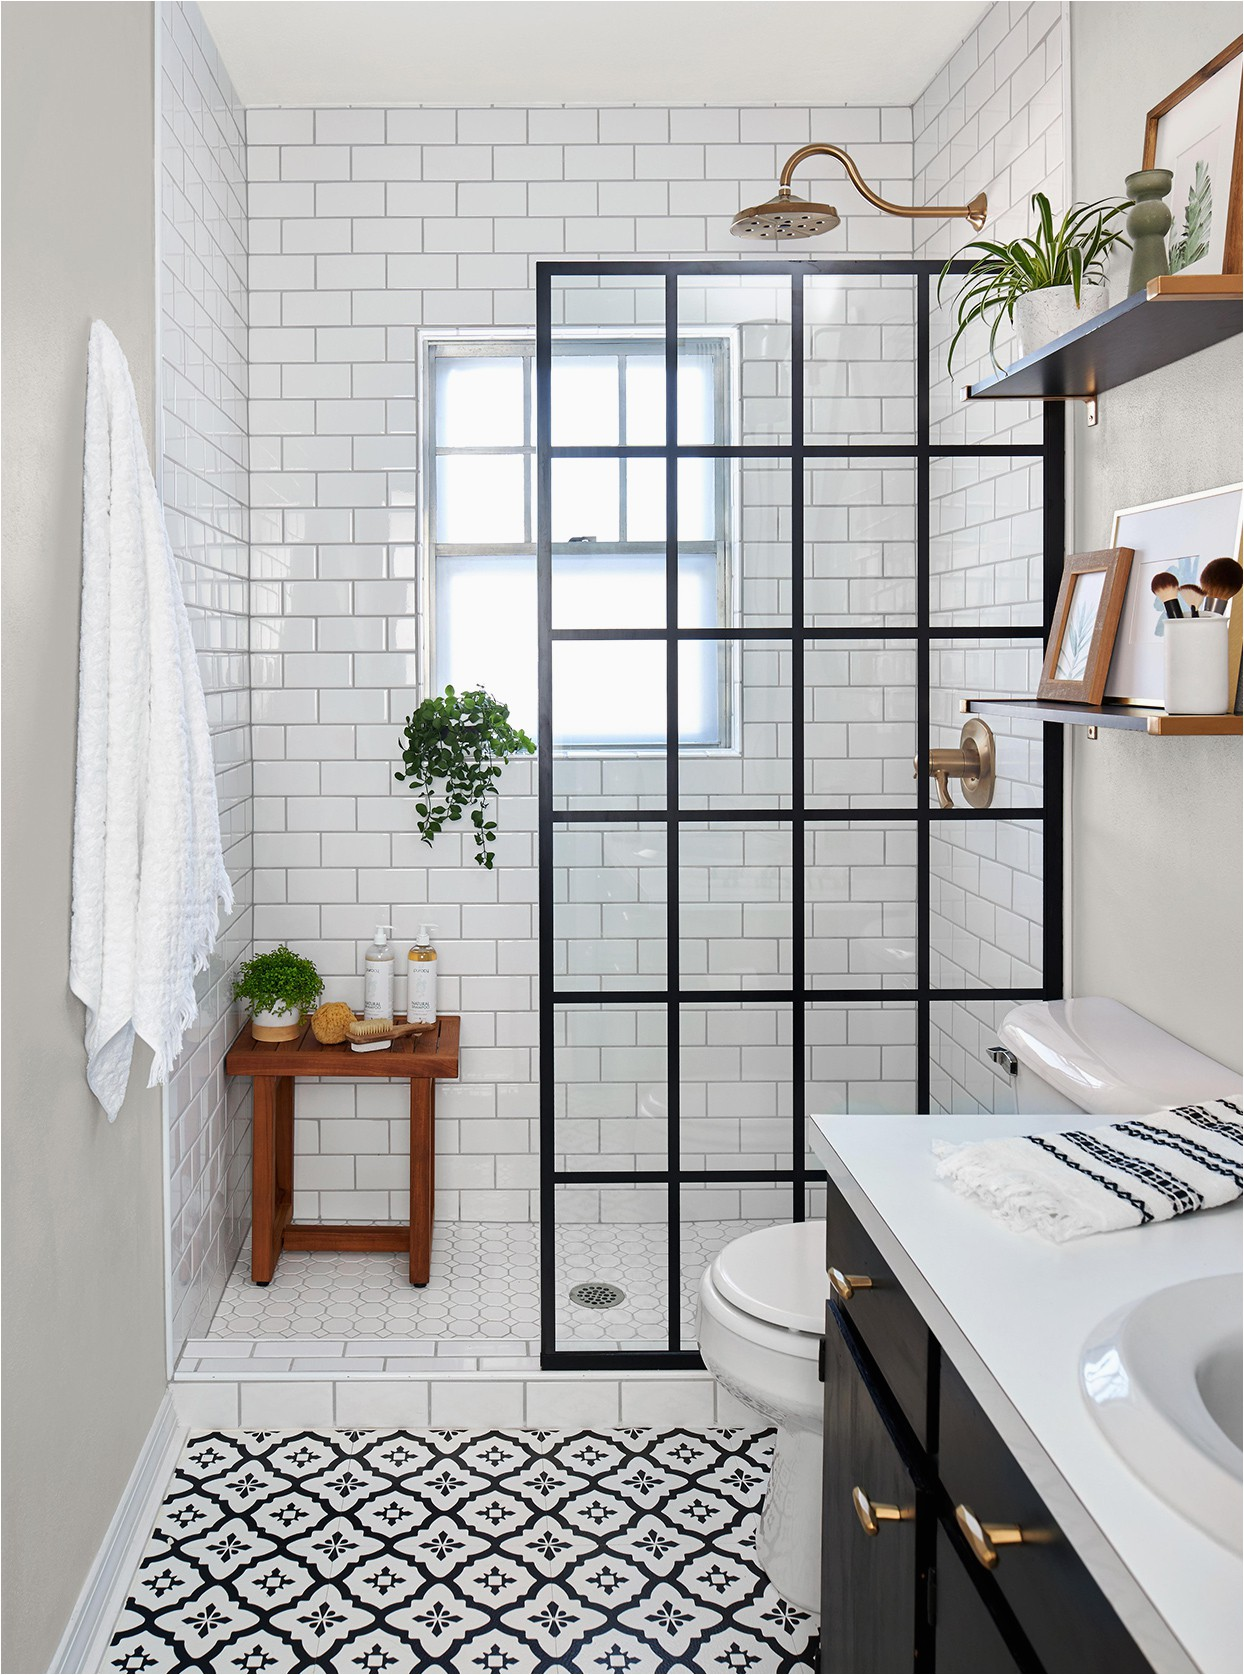 5 X 8 Bath Rug before and after Small Bathroom Remodels that Showcase